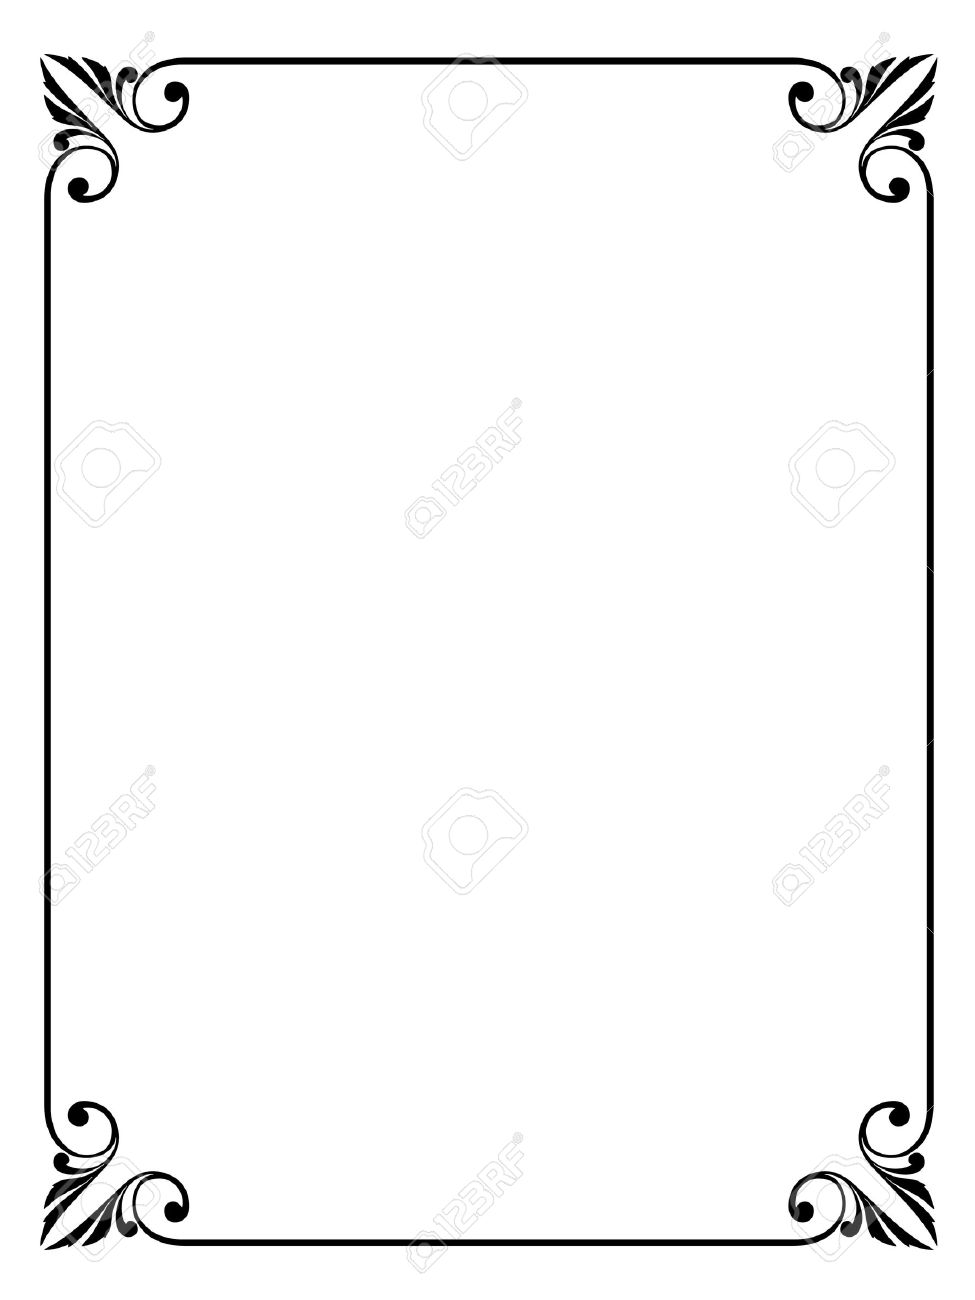 Simple Calligraphy Ornamental Decorative Frame Pattern Stock Vector